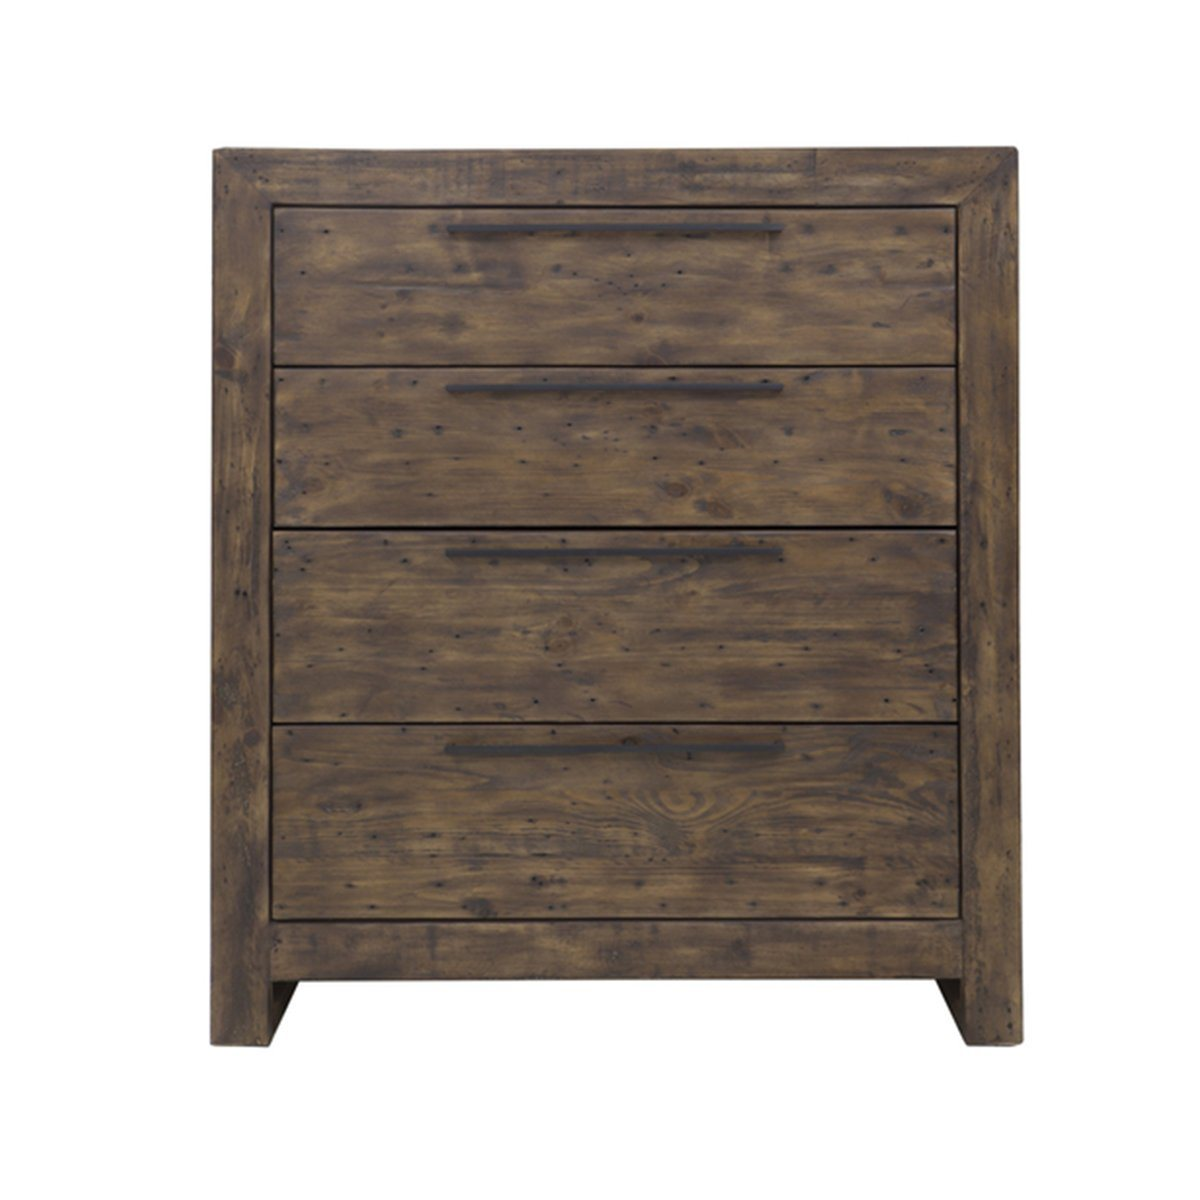 MODERN 4 DRAWER CHEST - COFFEE BEAN - Showhome Furniture